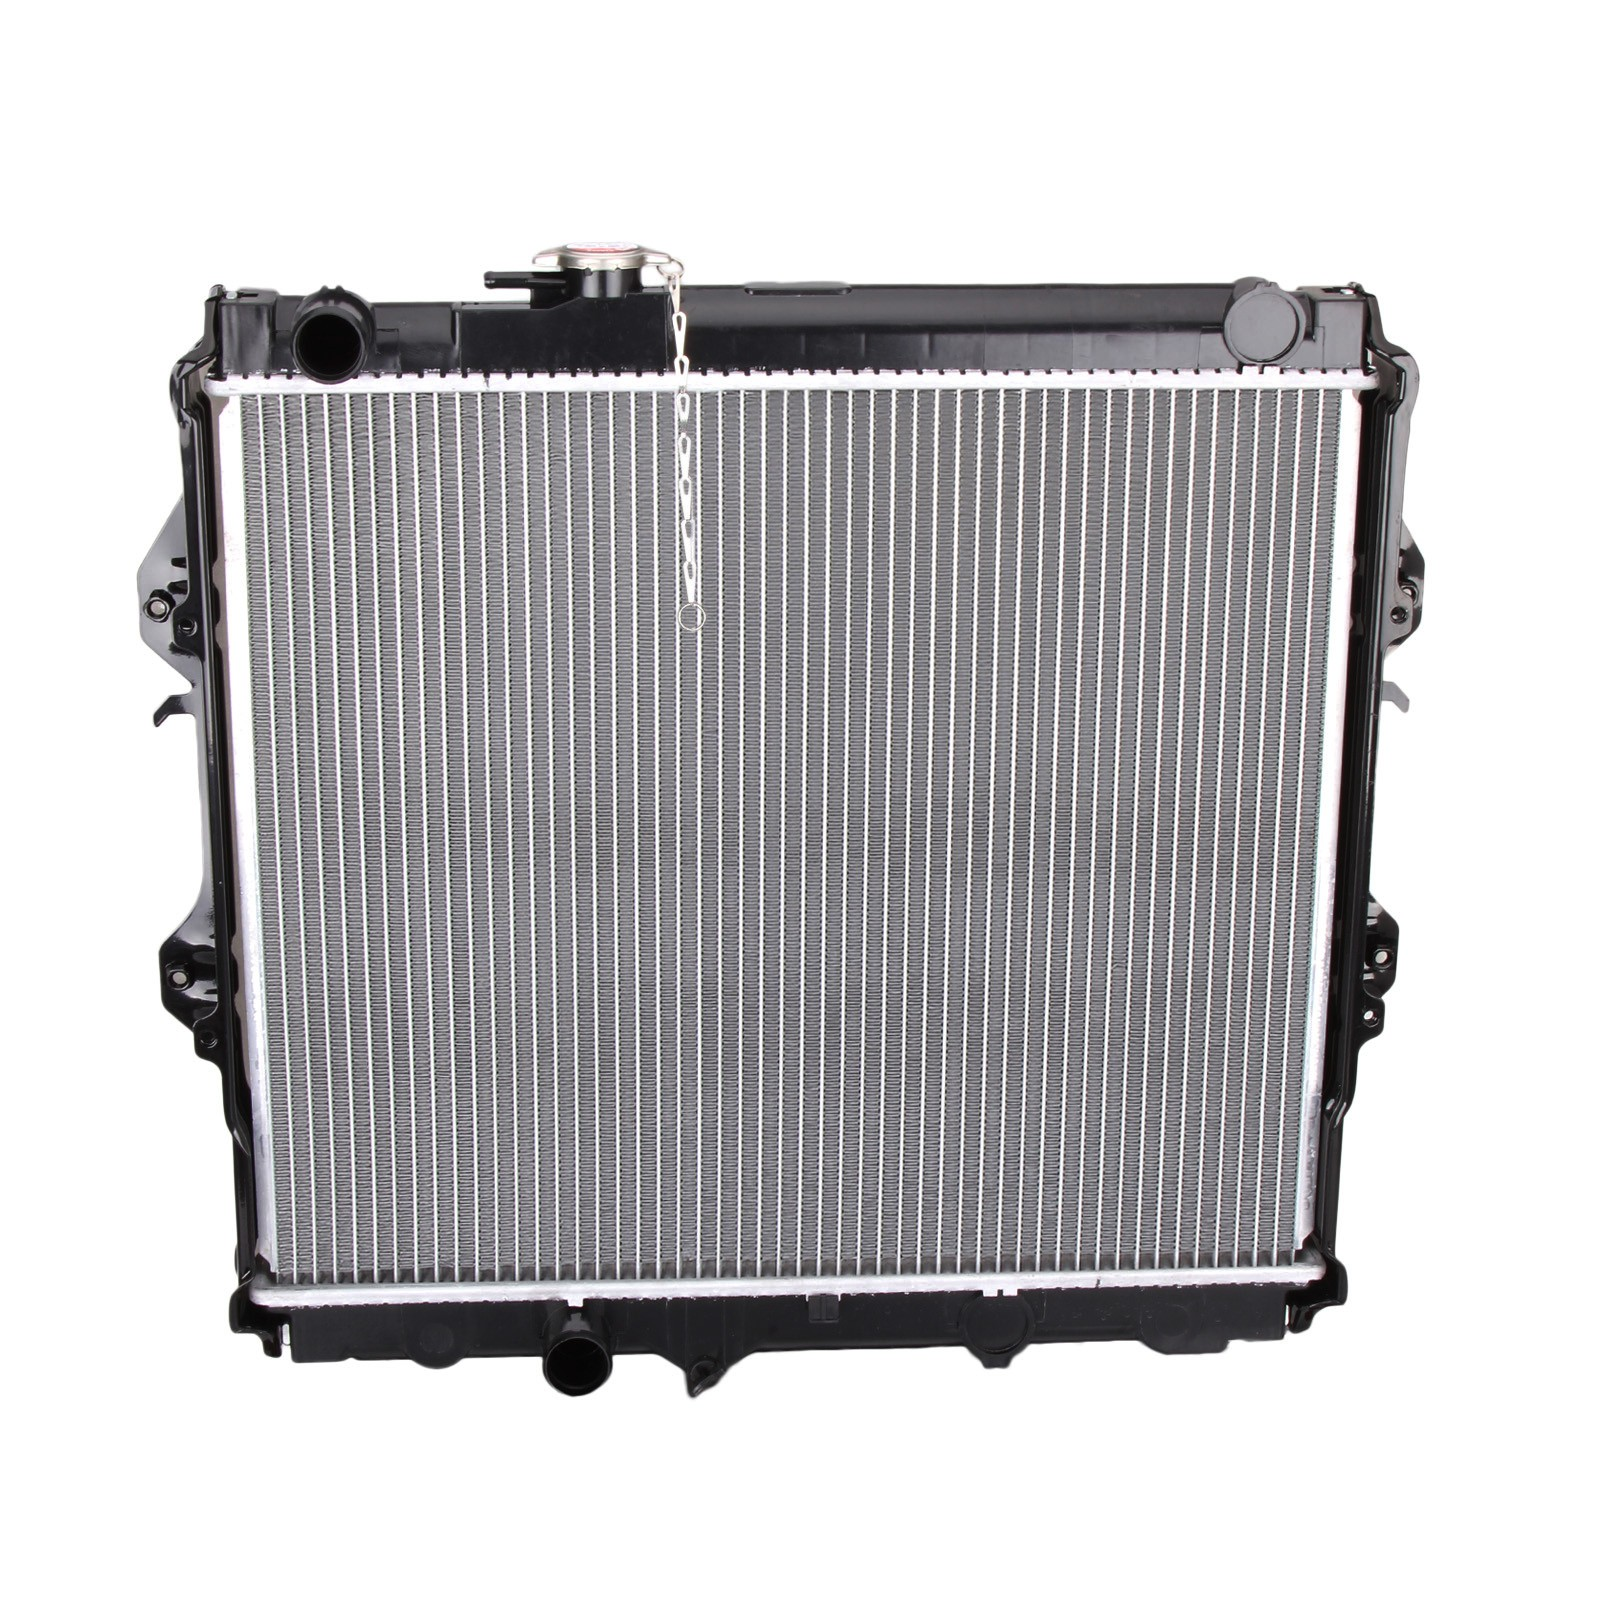 Dromedary-Find Toyota Radiator Toyota Yaris Radiator From Hongdao Car Radiator-5